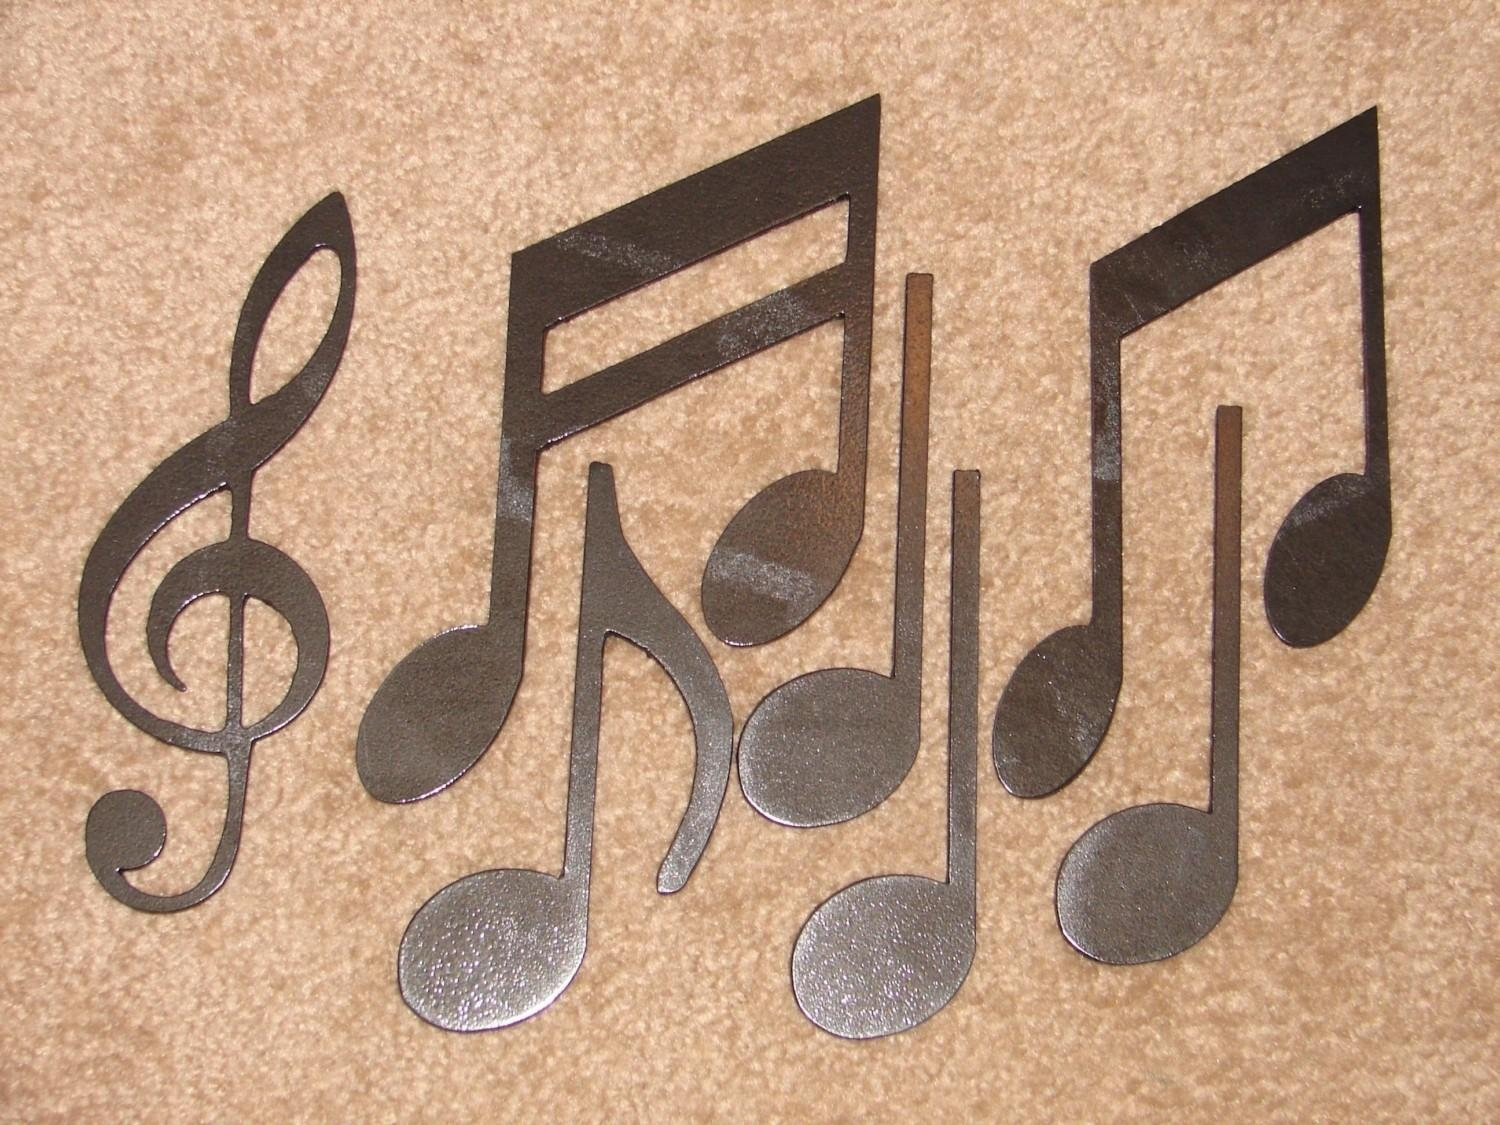 Metal Wall Art Decor Music Notes Musical Note Patio Intended For Music Note Wall Art (Image 5 of 20)